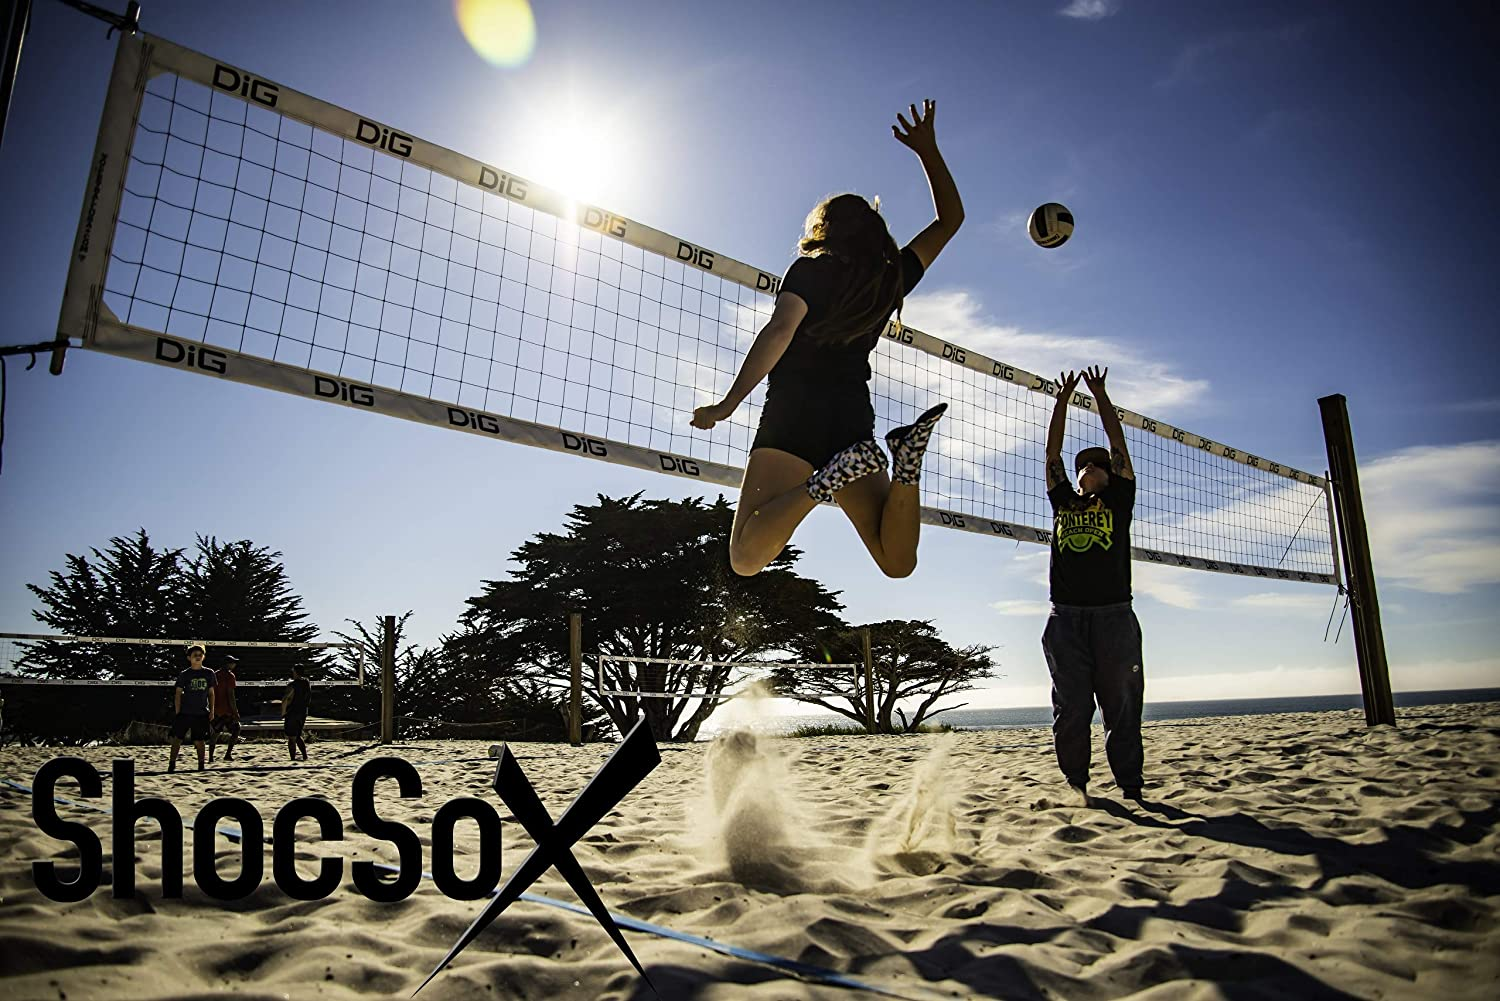 Best Beach Volleyball Socks Sand Soccer Socks Play in Our Never Slip or Rip Secure Top Neoprene Socks All Day All Season. Fin Socks and All Beach Sport Sock Activities